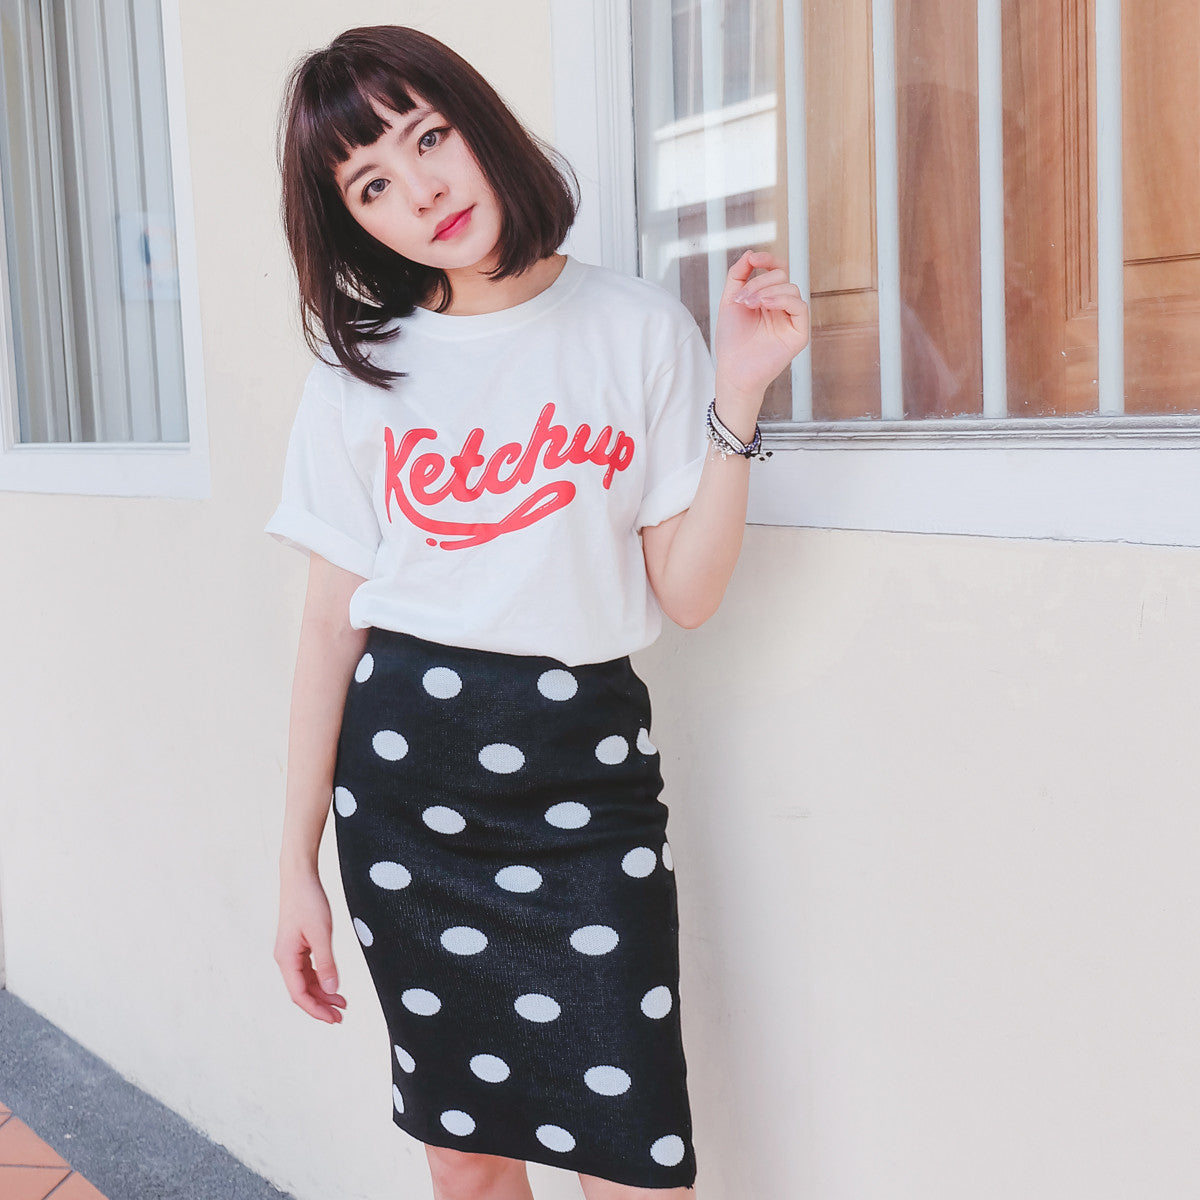 [Restocked] Let's Ketchup Tee in White